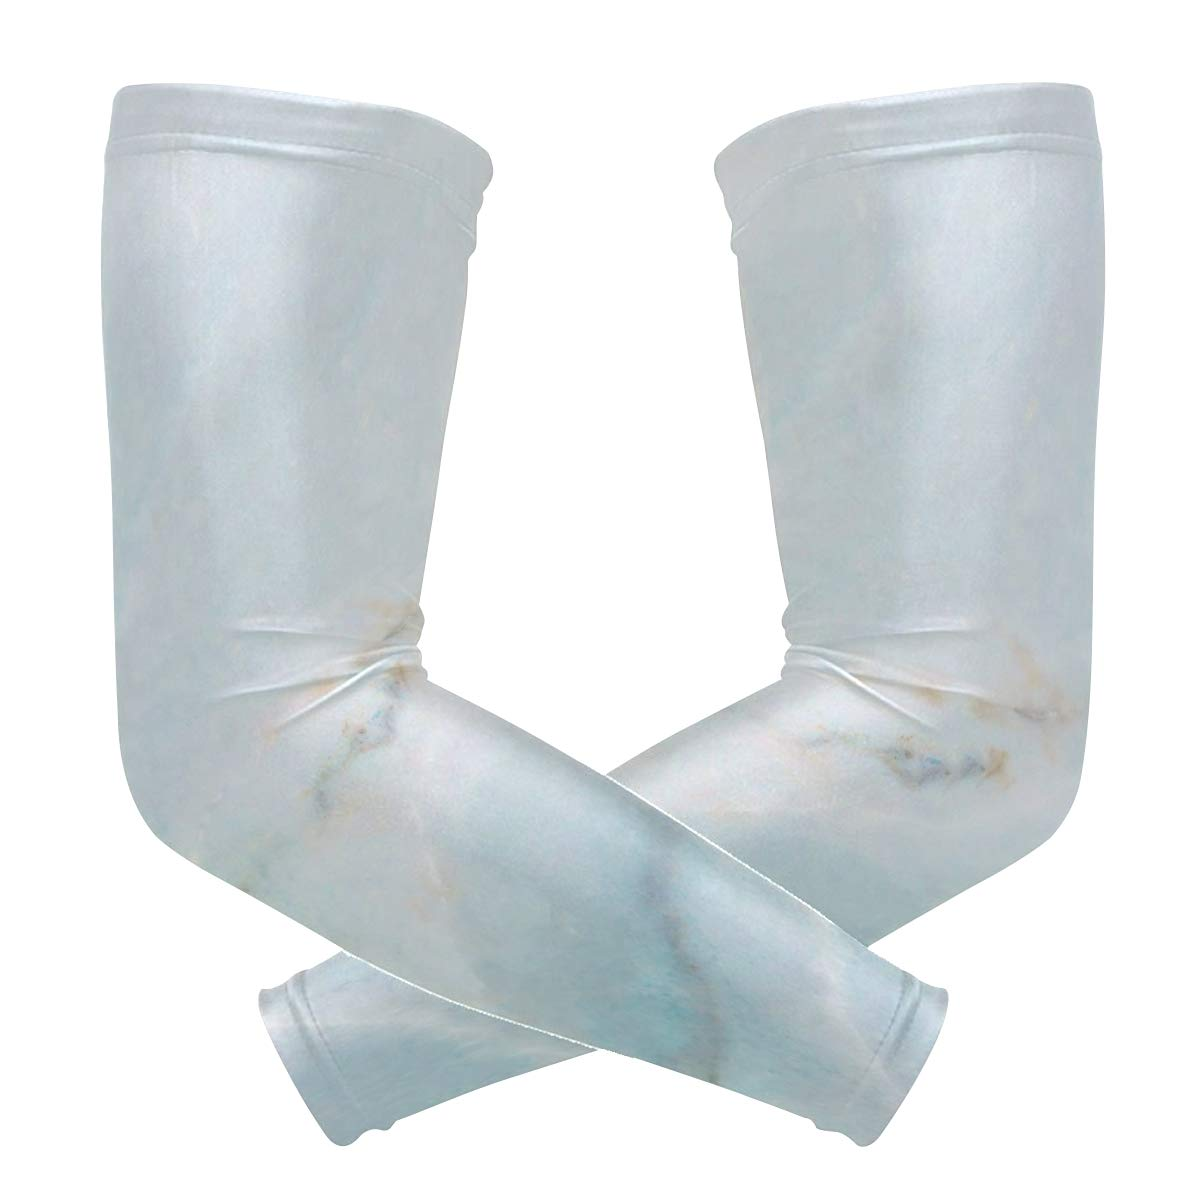 Arm Sleeves Blue And White Porcelain Marble Mens Sun UV Protection Sleeves Arm Warmers Cool Long Set Covers